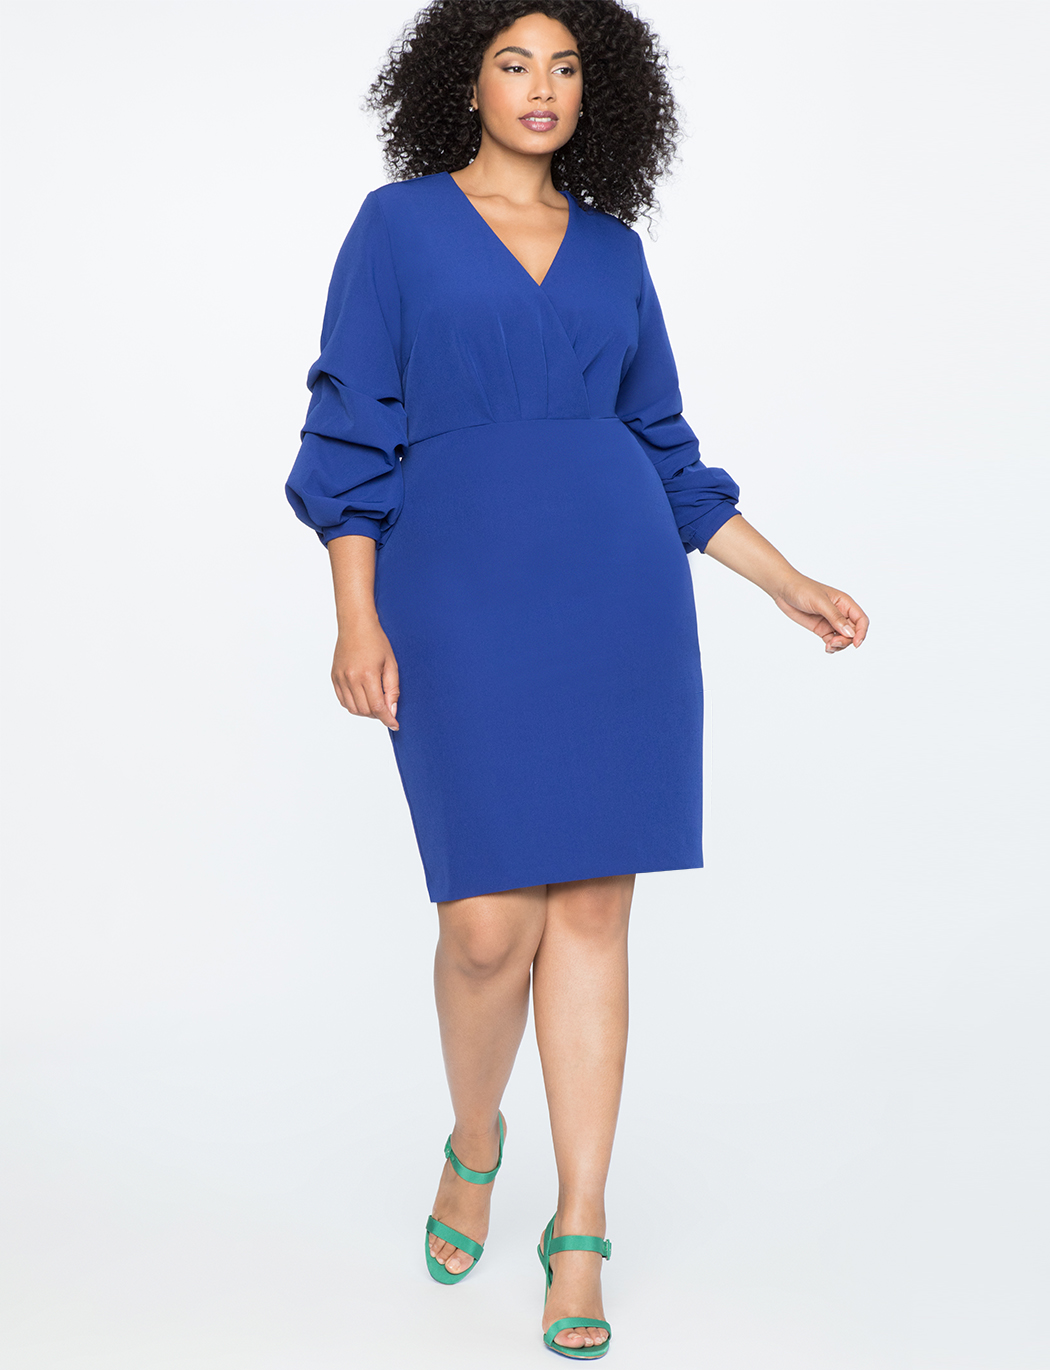 Puff Sleeve Overlap V-Neck Dress   $49.90